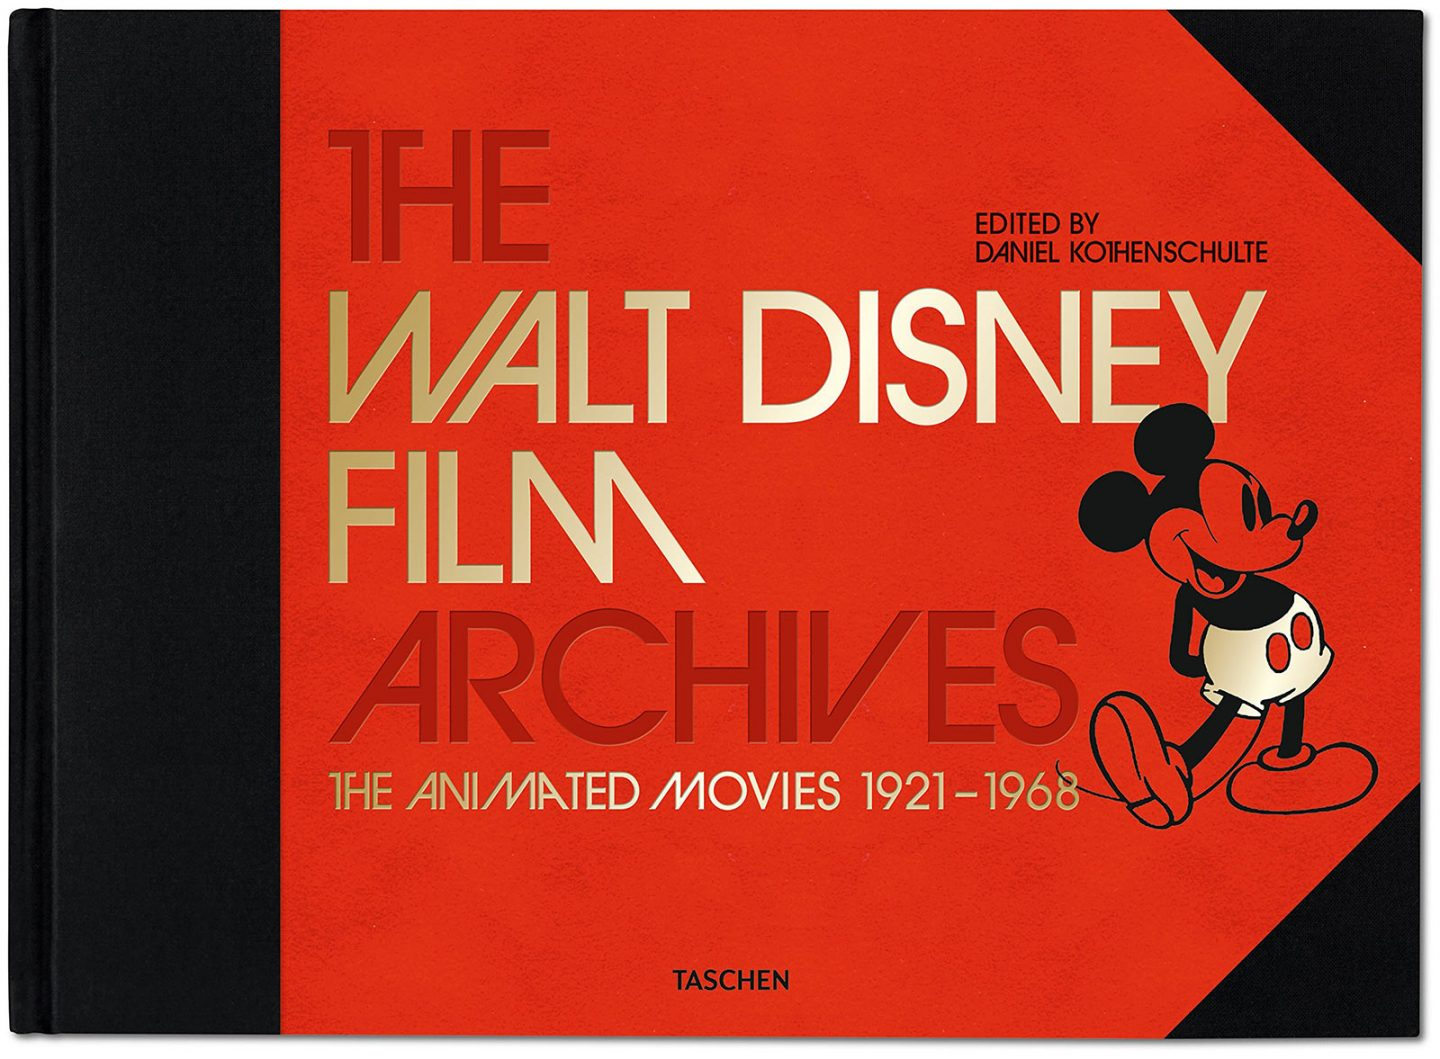 the history of walt disney film studies essay Writing research paper on walt disney seems easy, but only if you are not floating in the amount of information available online dig in and you will find ten major facts to reveal in your paper.